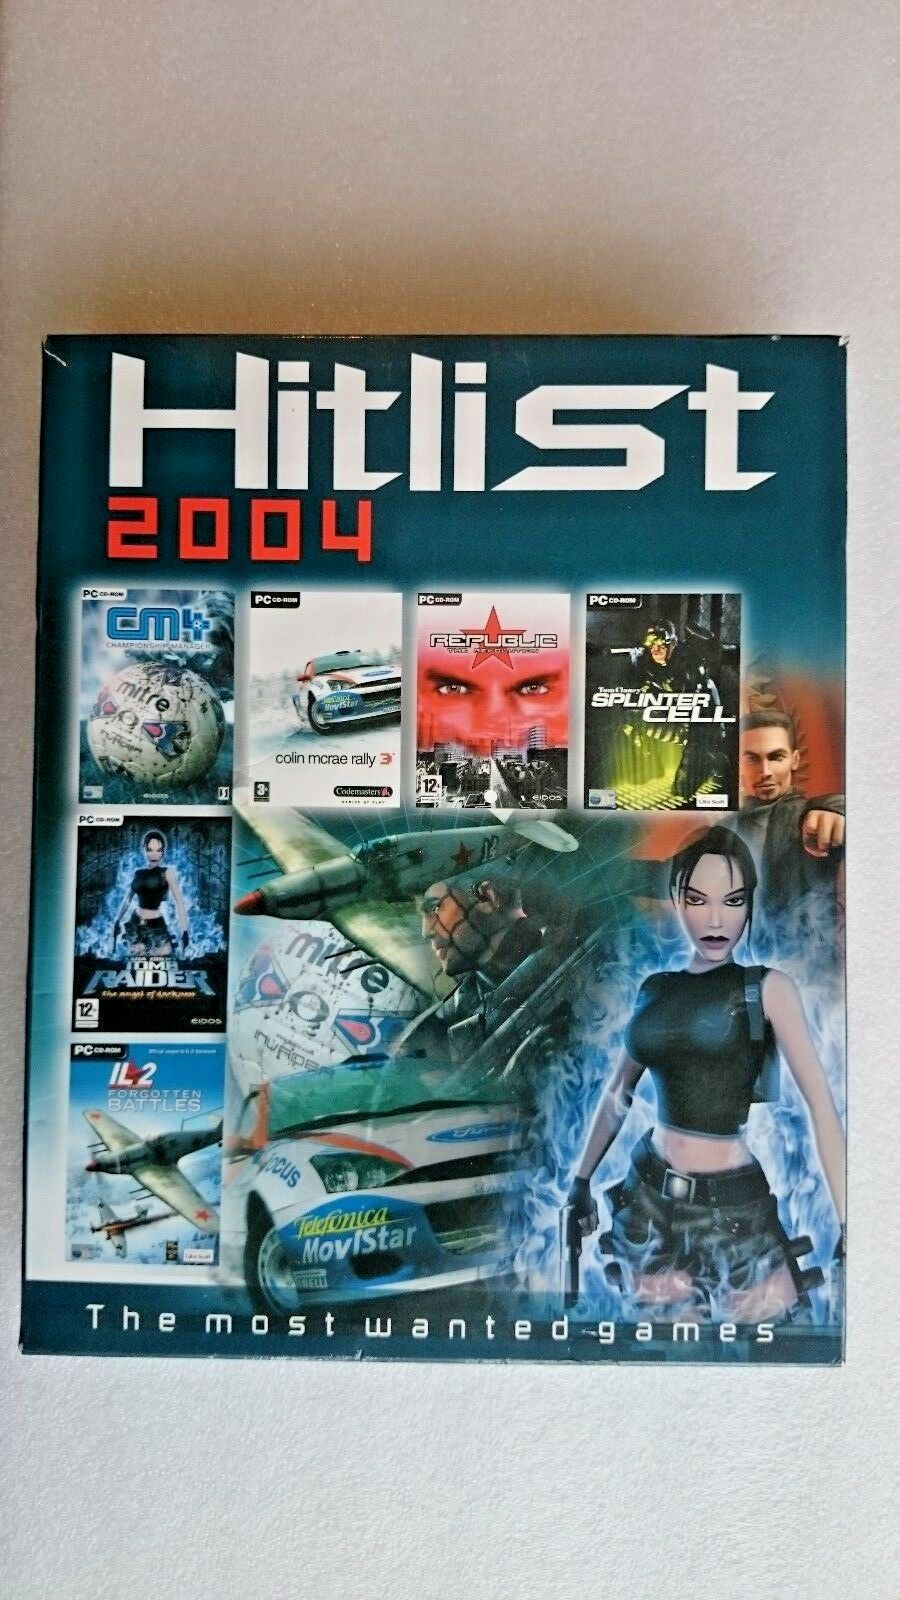 Hit list Collection 2004 Tomb Raider, Splinter Cell Plus More PC